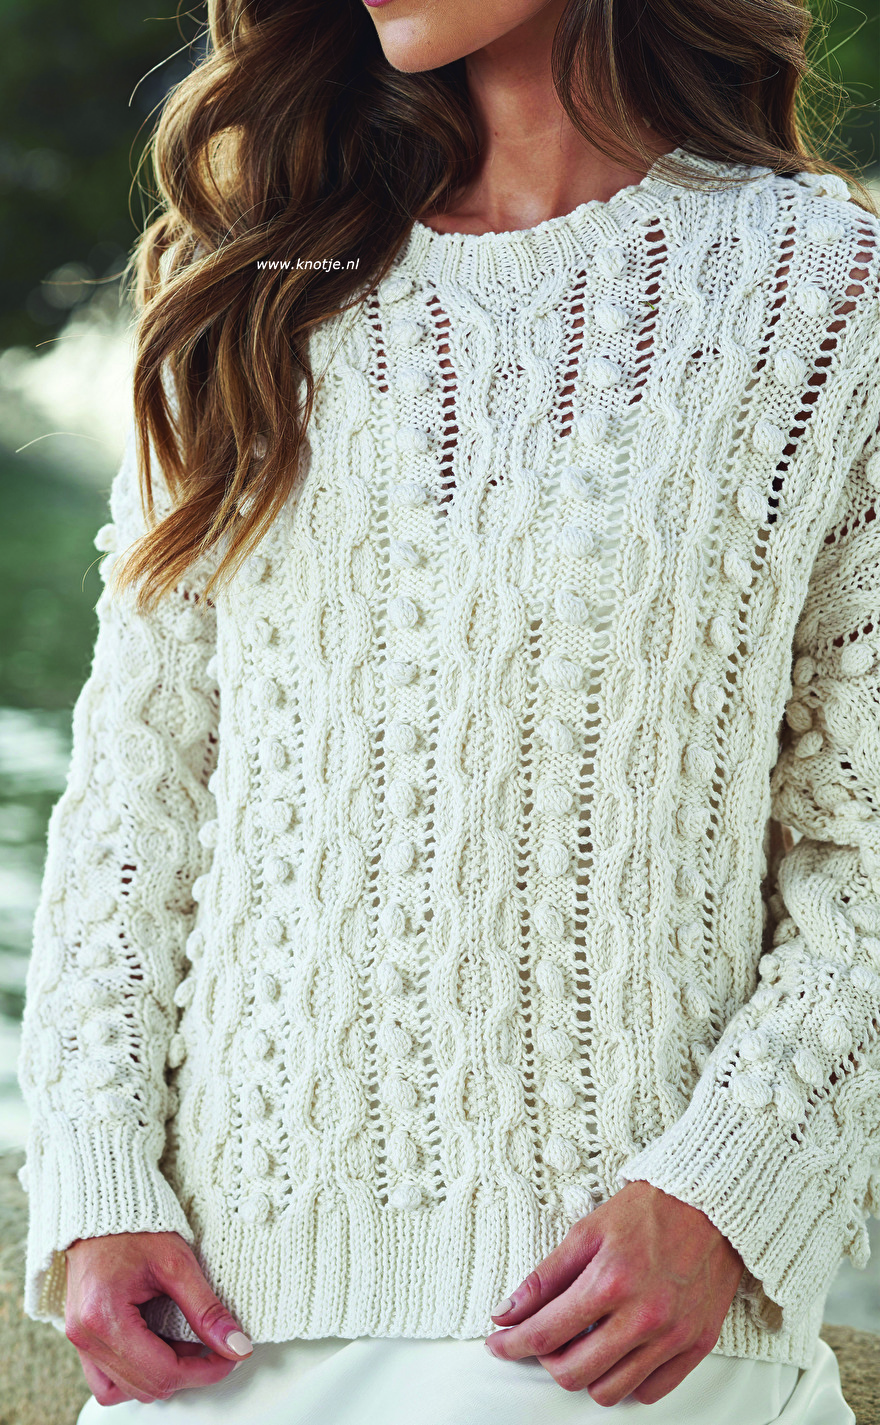 009 cable bobble sweater 2kopie.jpg